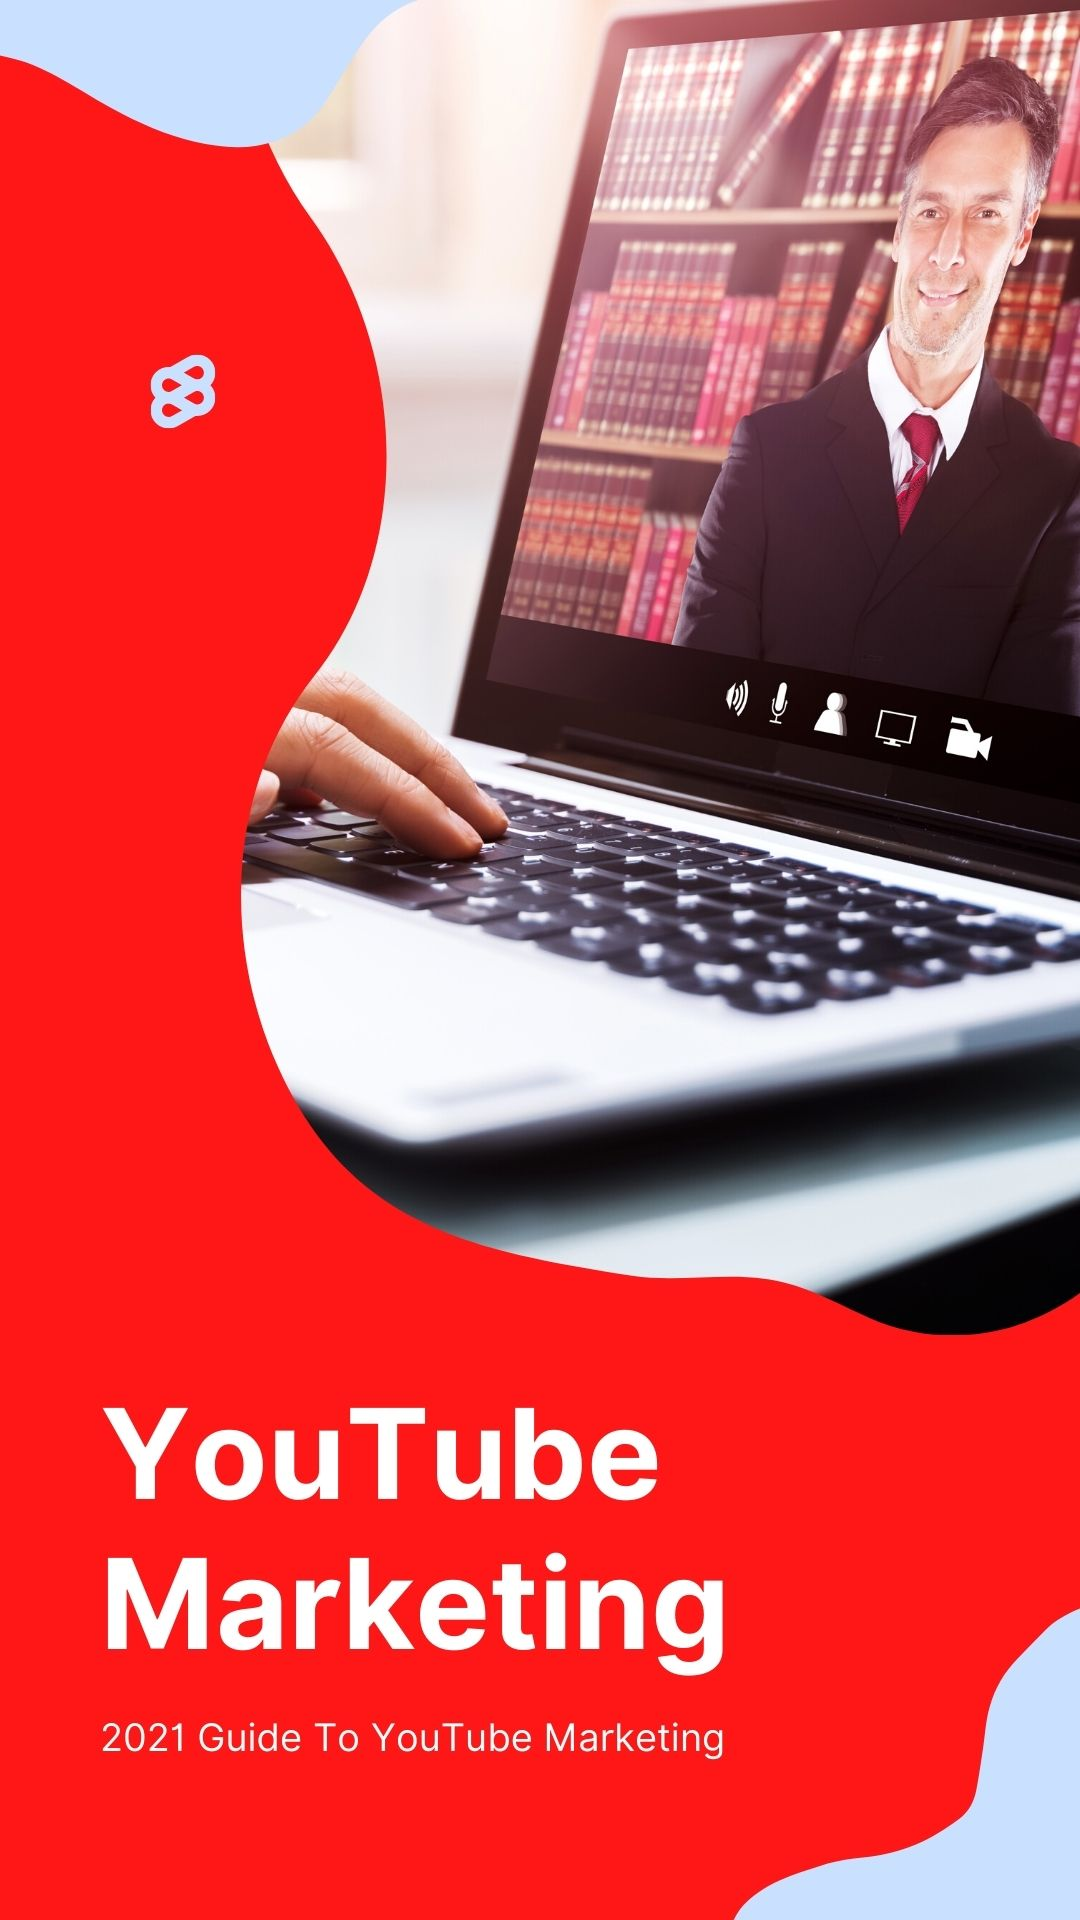 YouTube marketing guide for lawyers